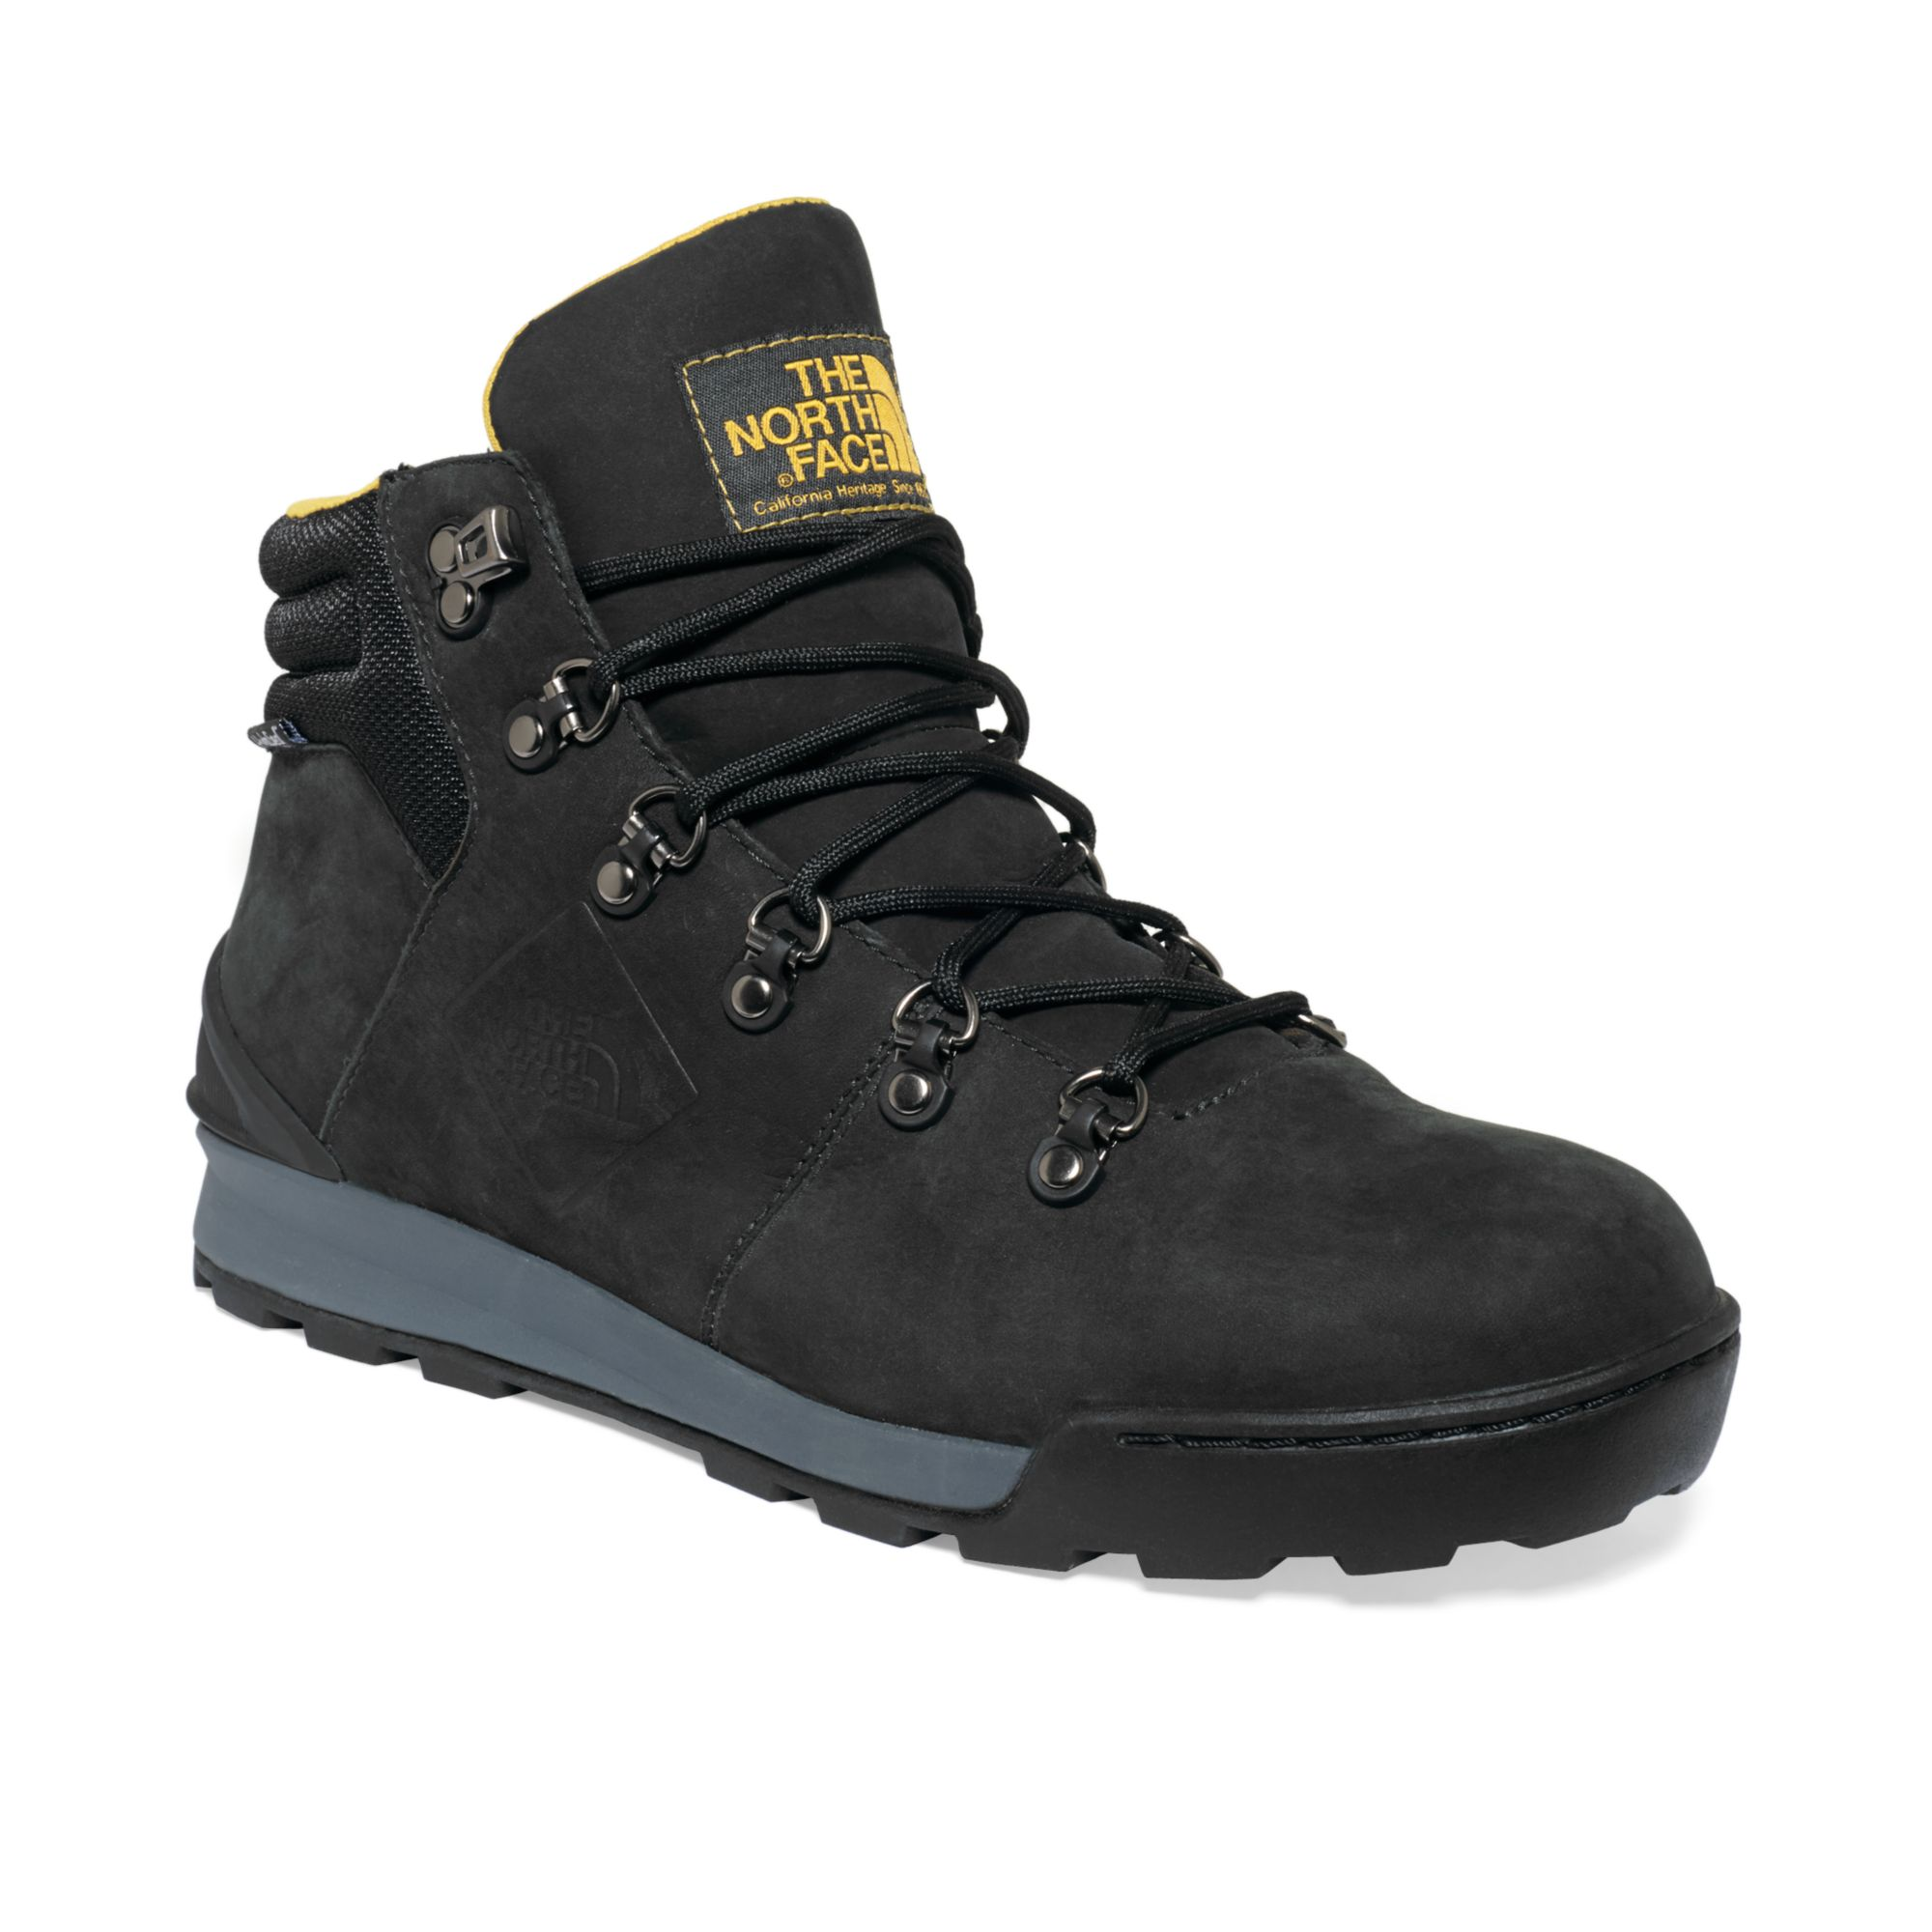 Robin Jeans The north face Backtob...